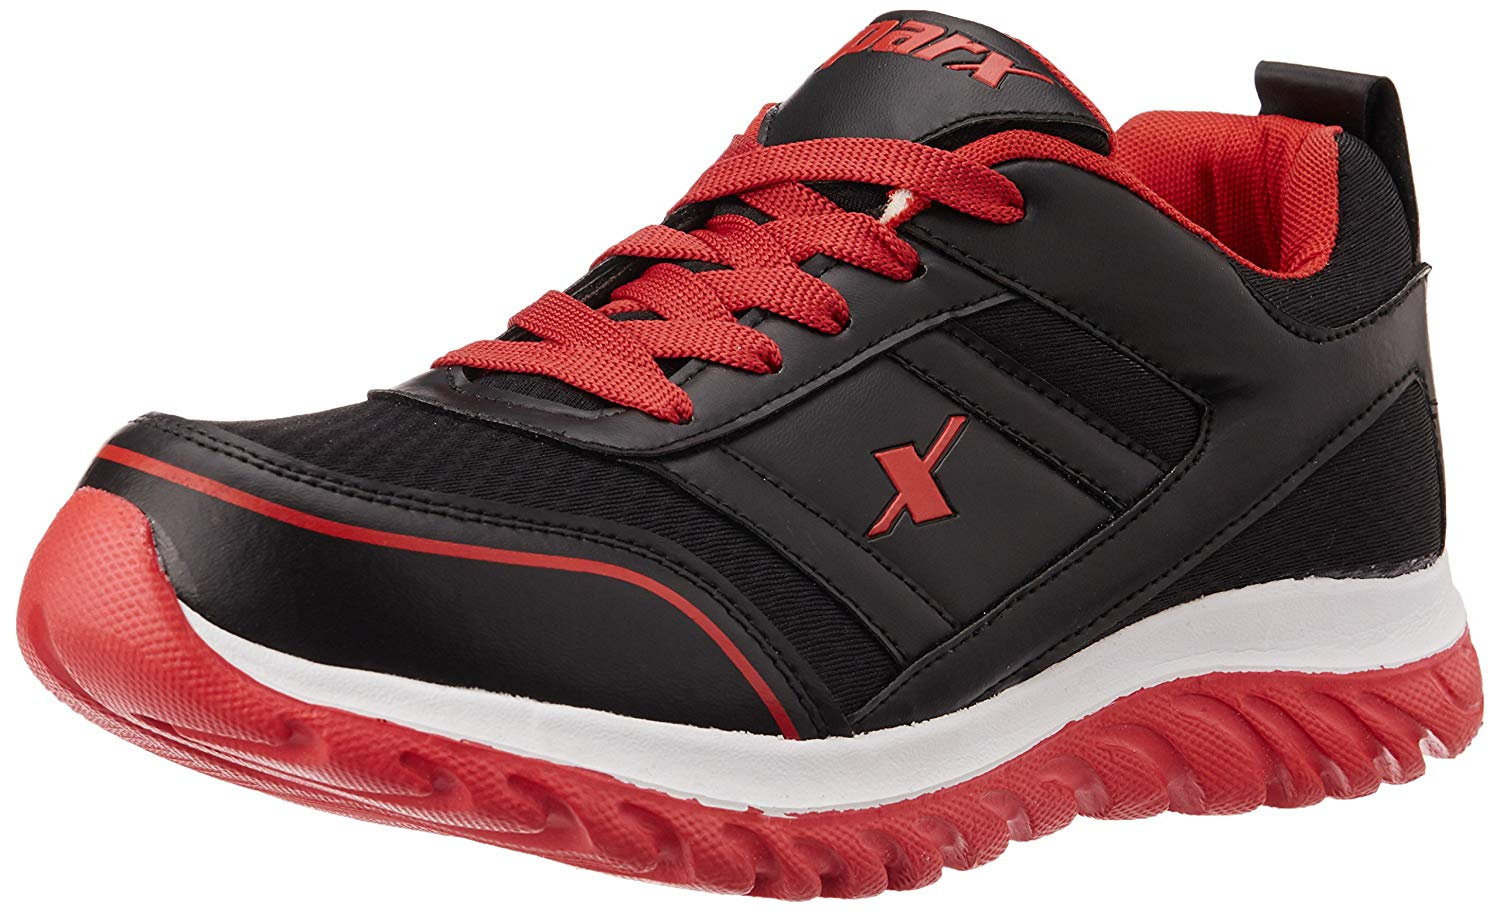 SPARX Mens Black and Red Running Shoes -9 UK image 1